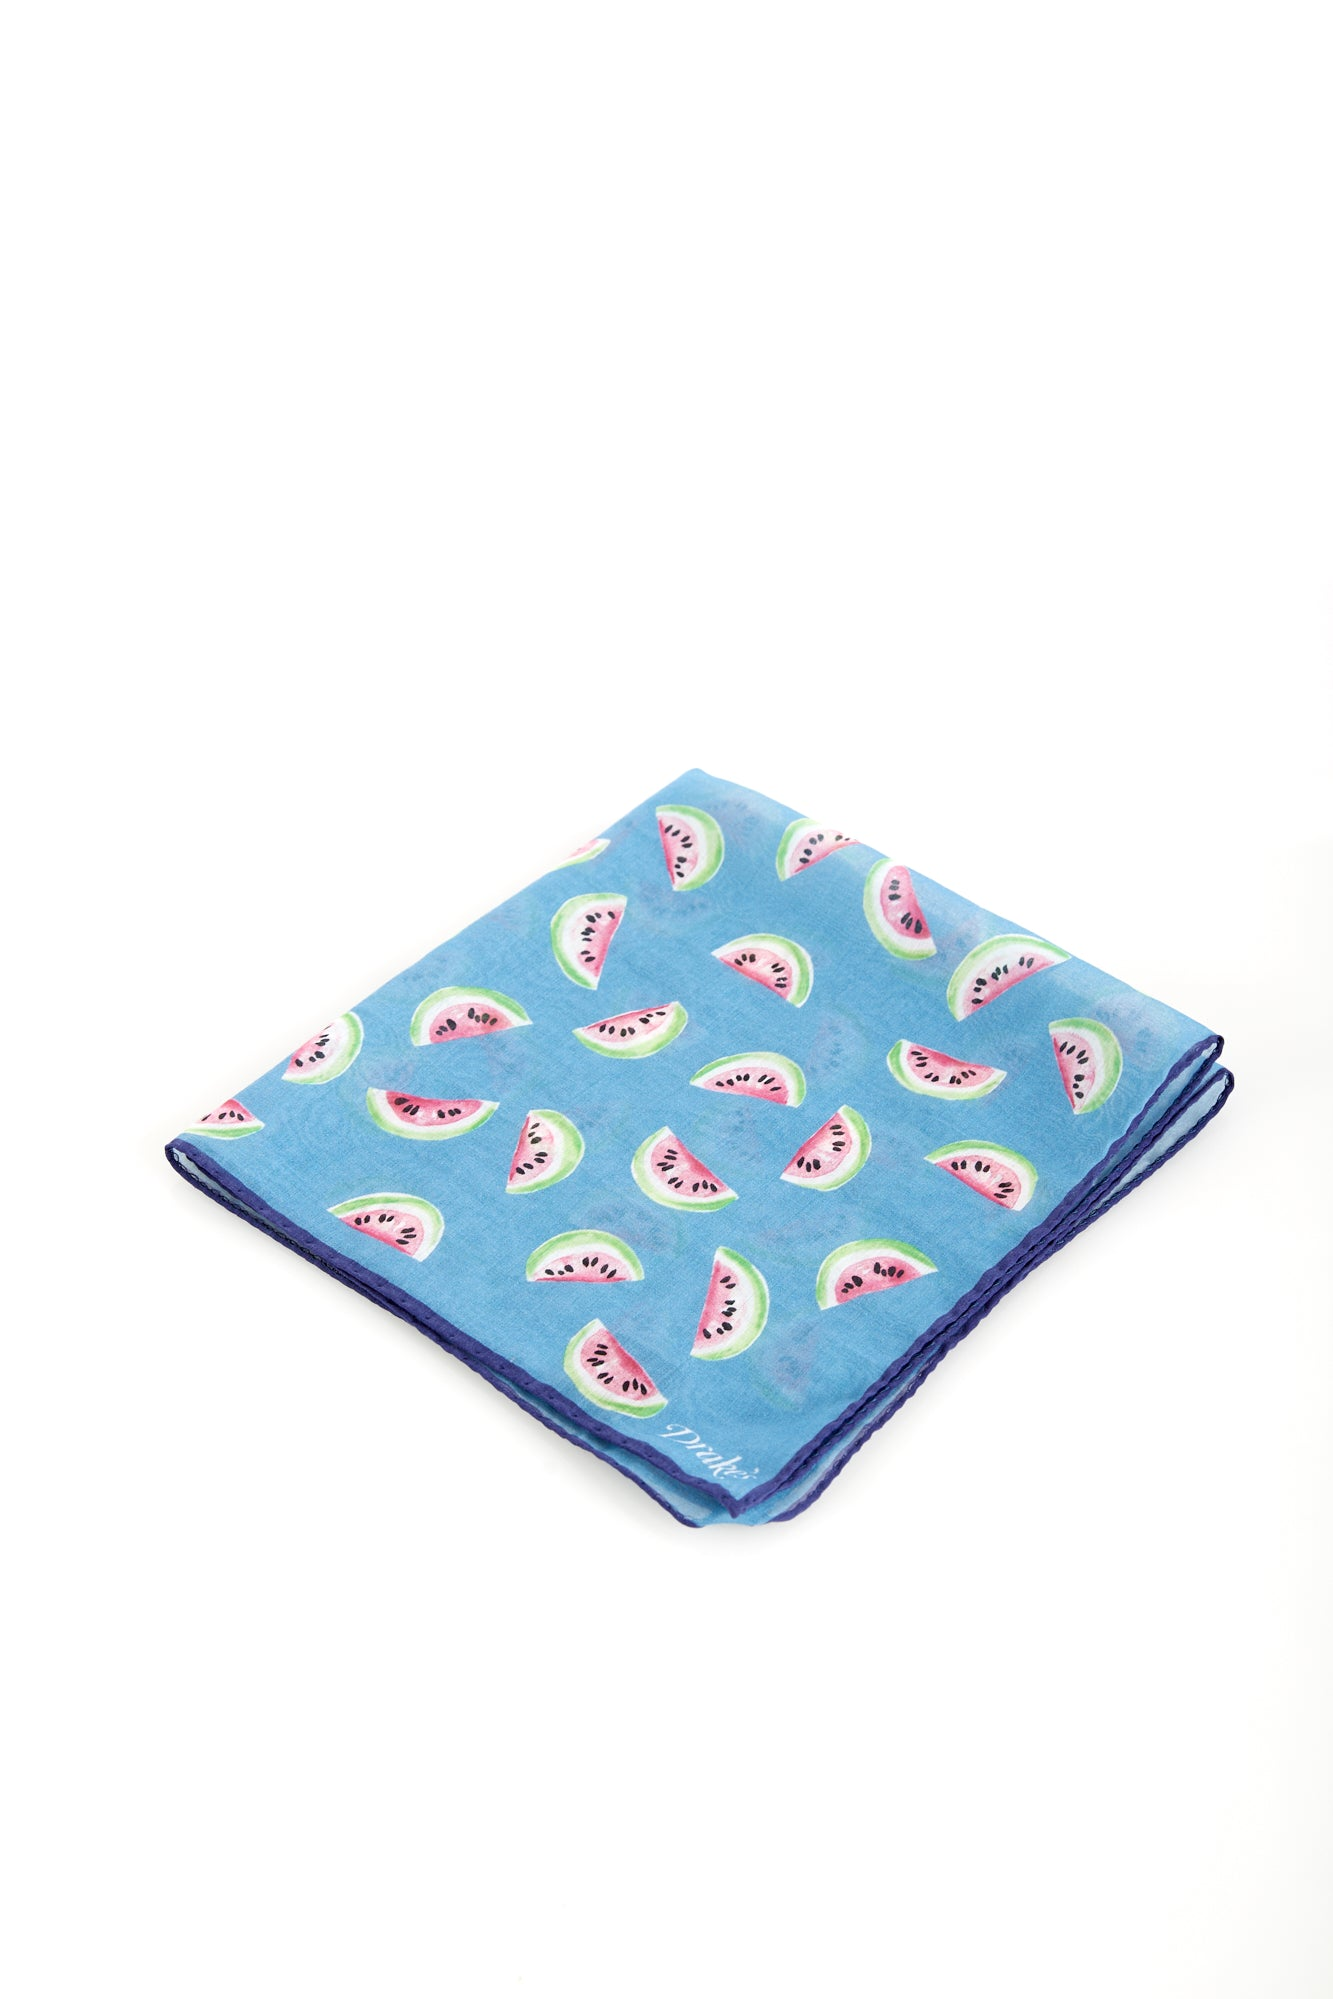 Drake's Light Blue Watermelon Pattern Cotton Blend Pocket Square - Accessories - Drake's - LALONDE's